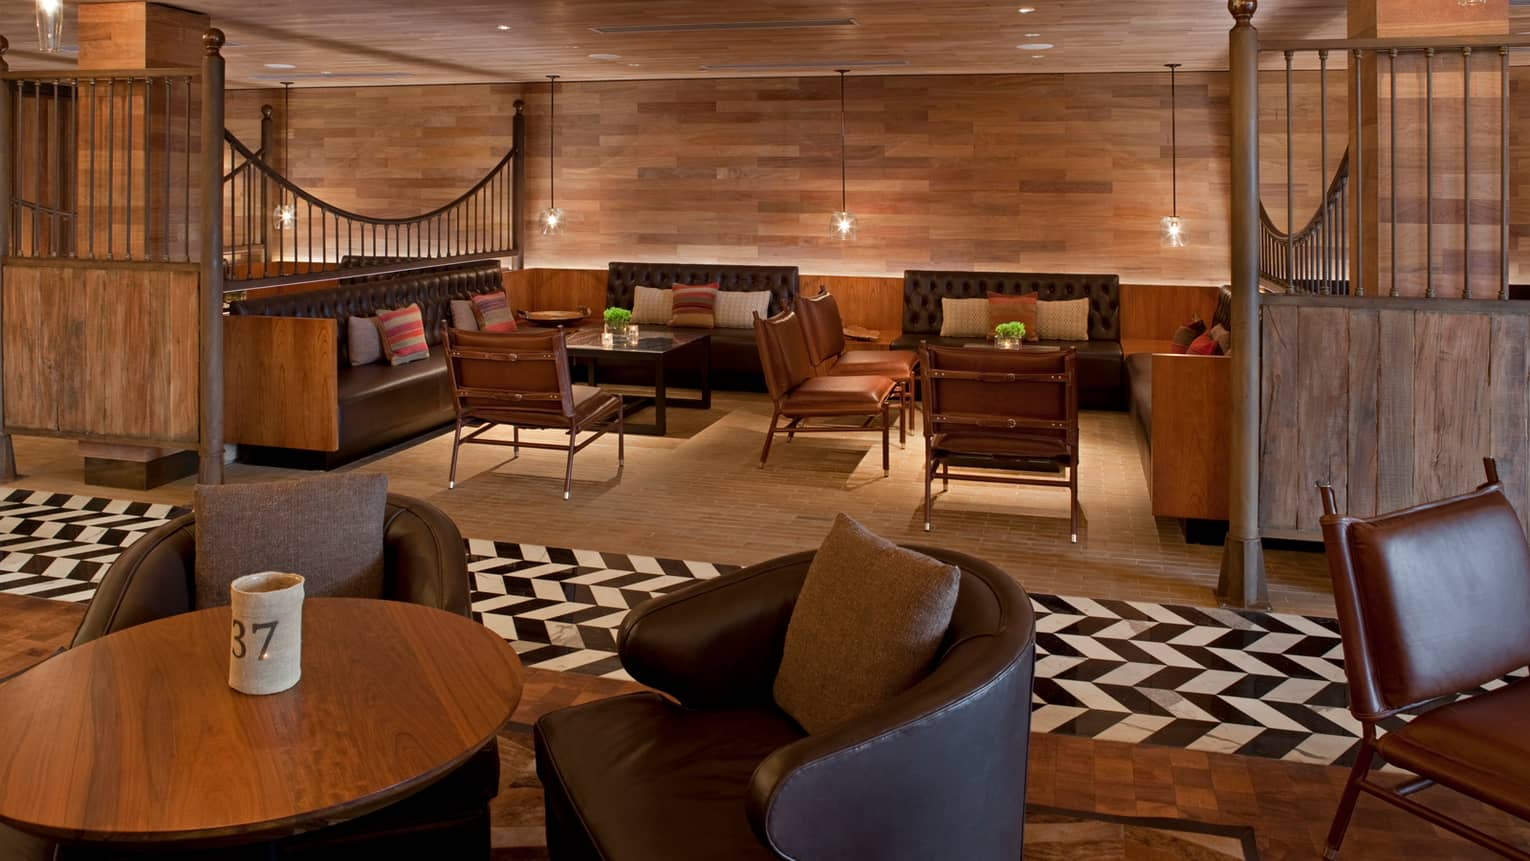 Pony Line lounge with rich brown wood flooring and walls over tables with stools, leather chairs, glass lamps